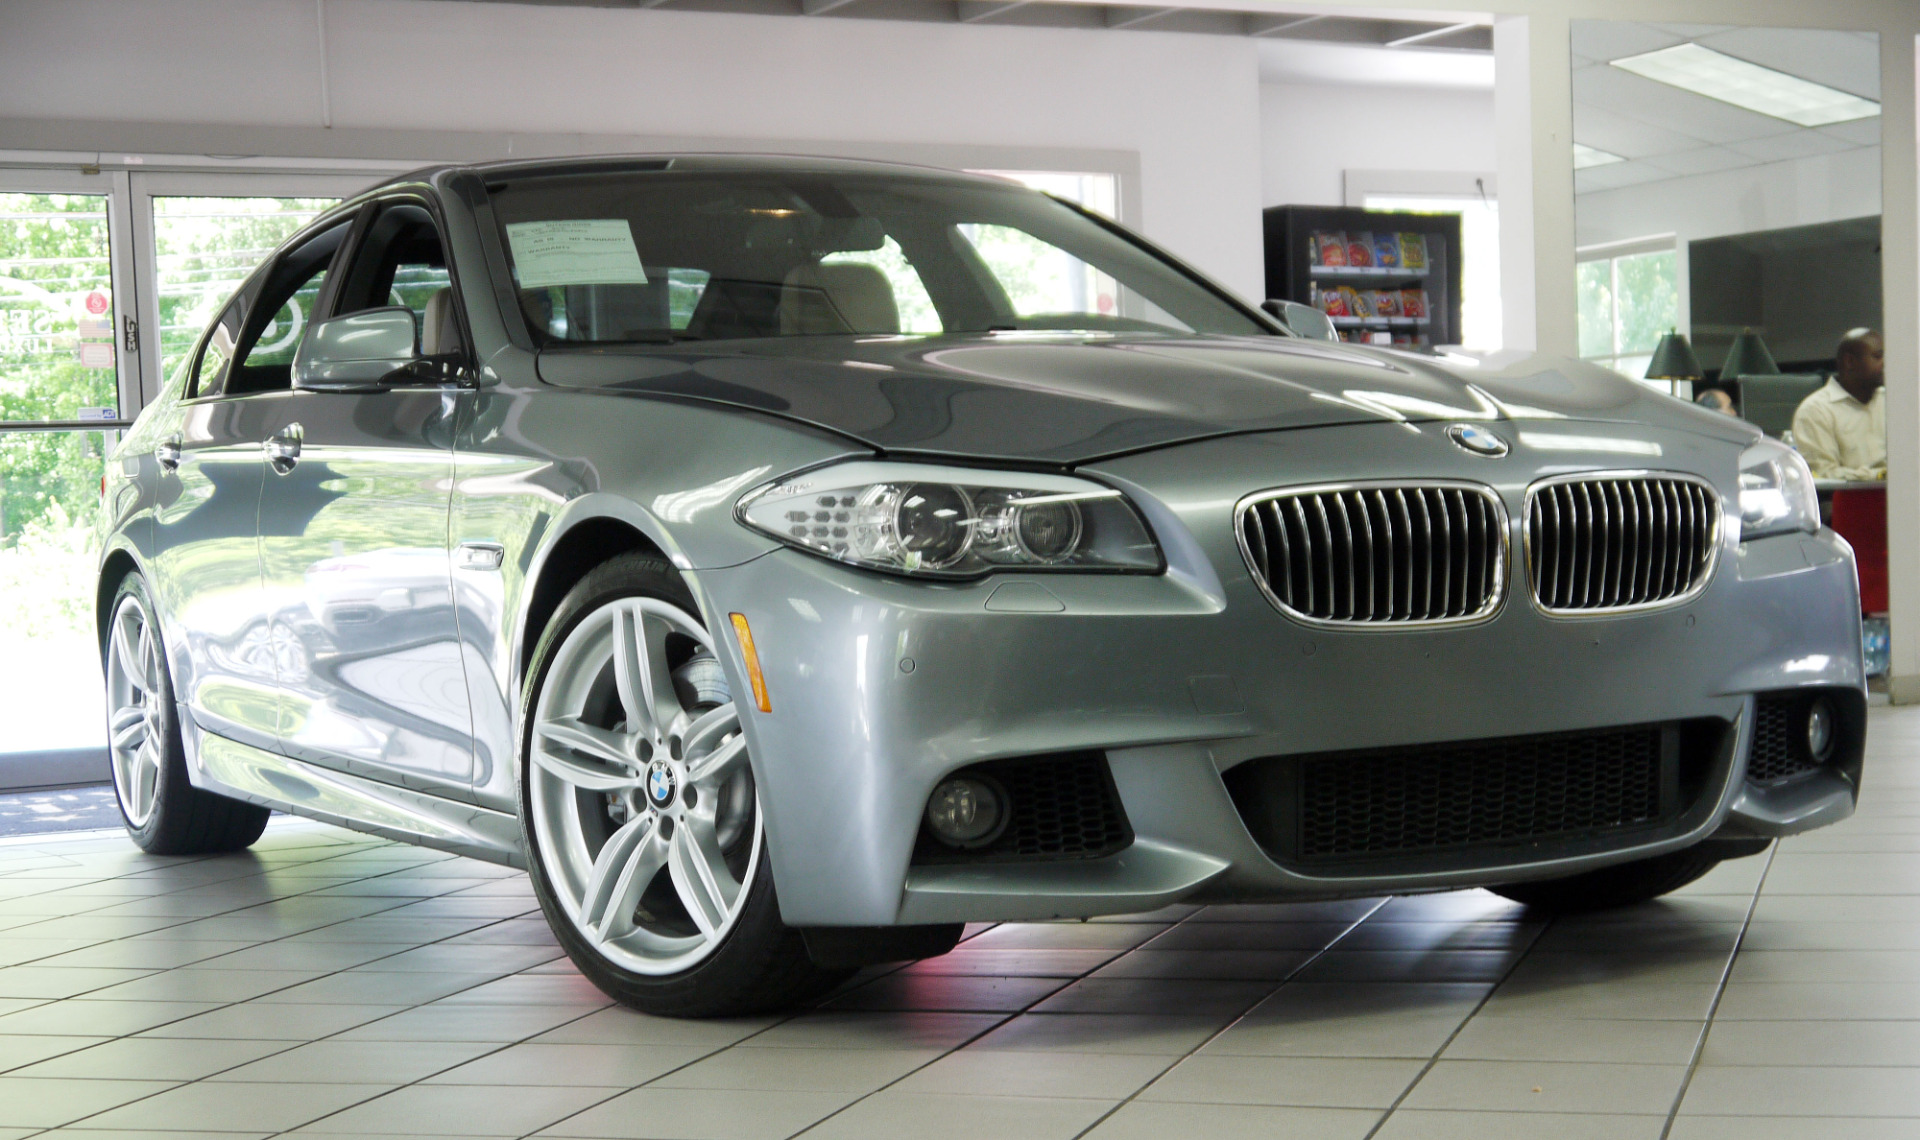 BMW 5 series 535i 2013 photo - 1